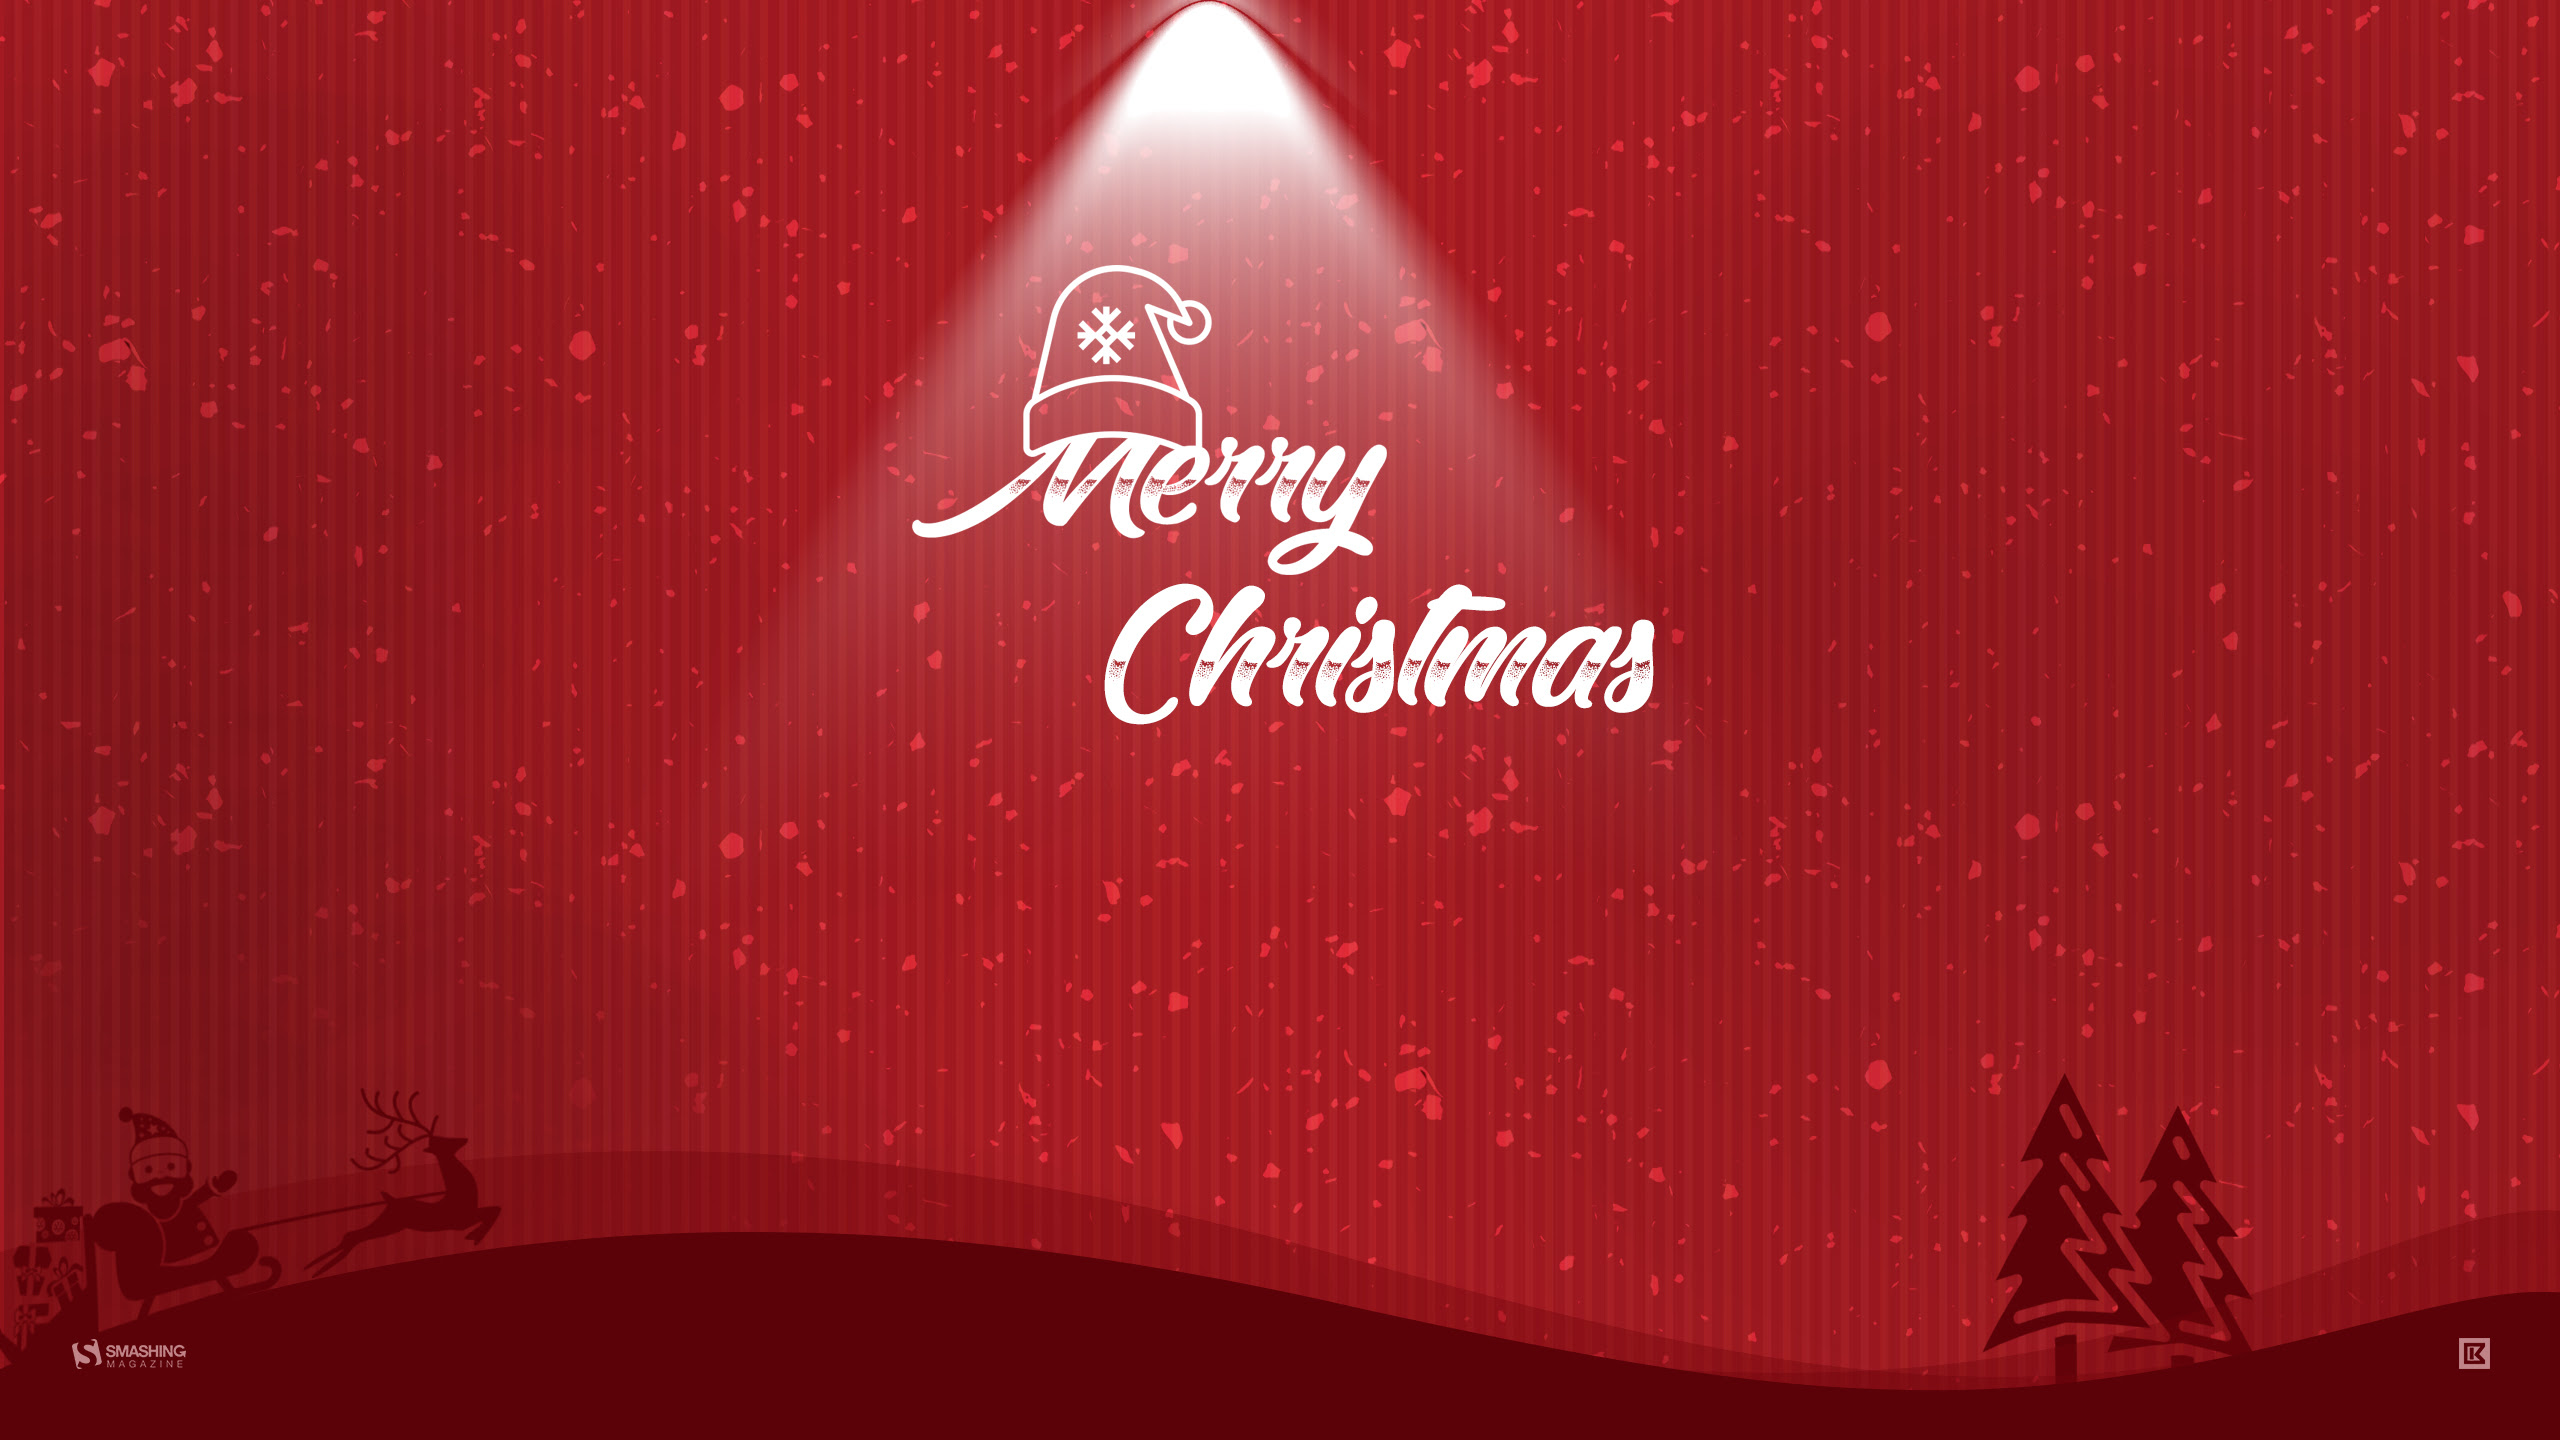 20 Beautiful Christmas Hd Desktop Wallpapers 2560x1440 High Quality